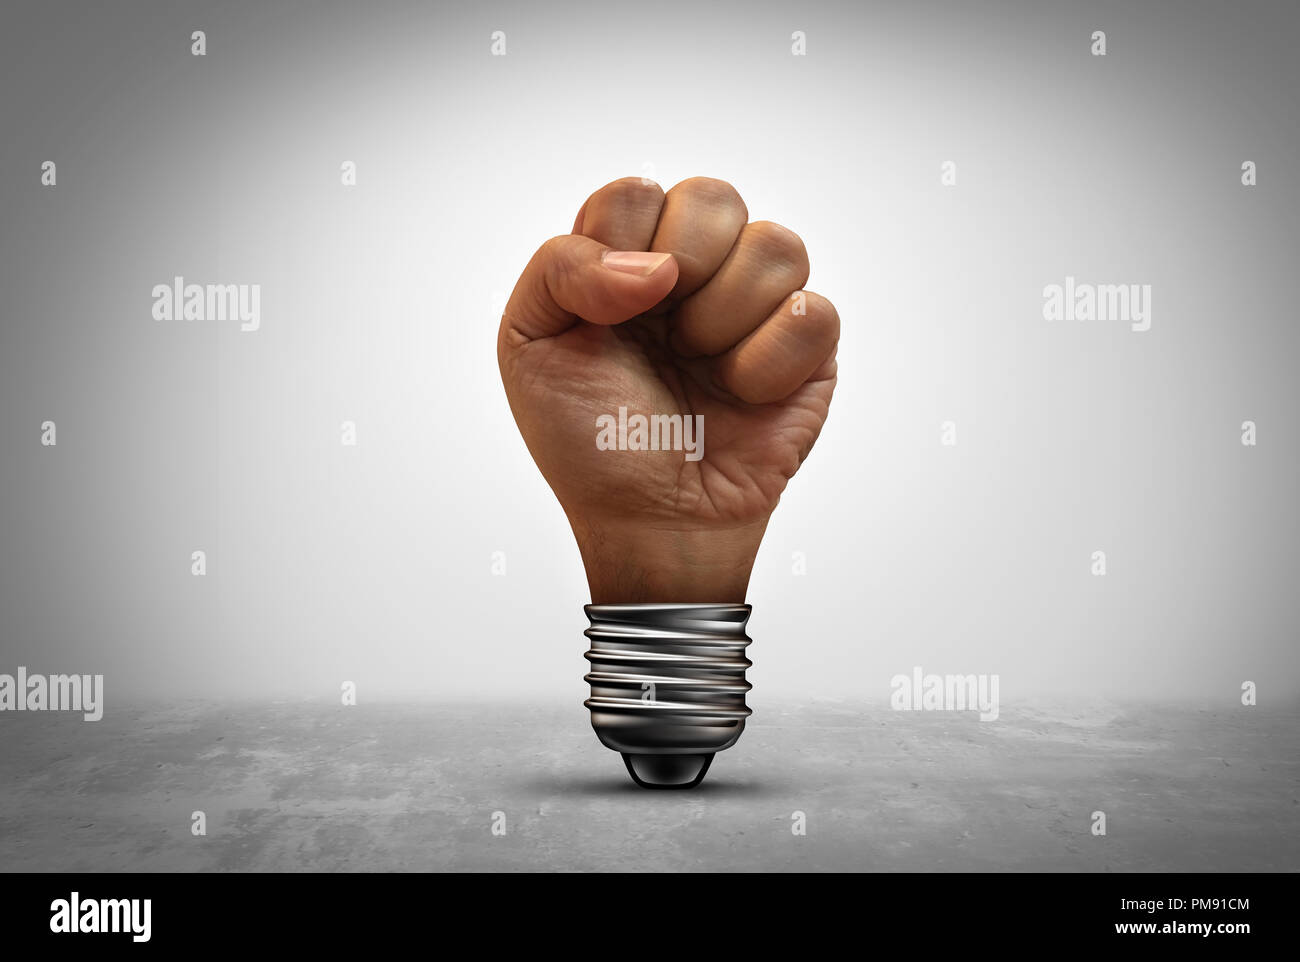 Power of idea concept as a human fist inside a light bulb socket with 3D illustration elements. - Stock Image